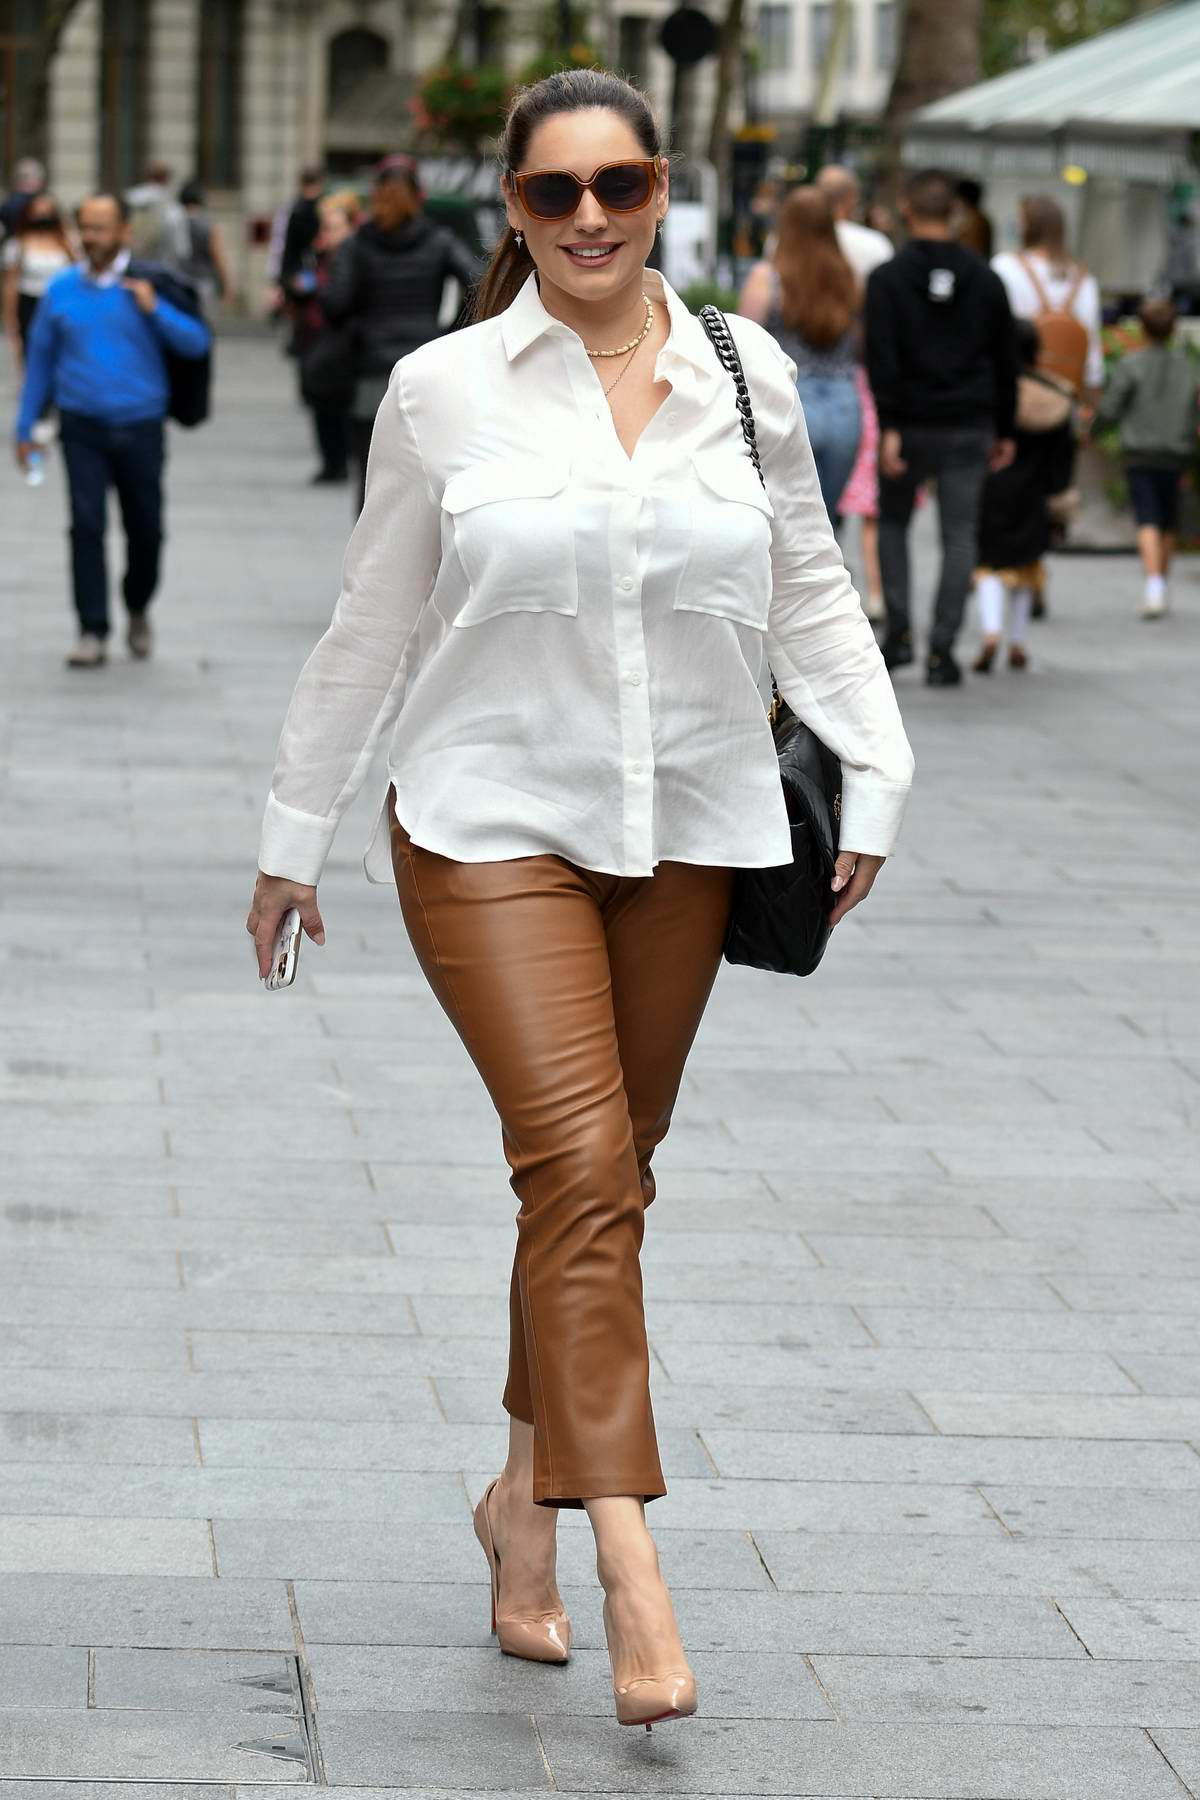 Kelly Brook wears a white shirt and tan leather pants as she arrives at the Global Radio Studios in London, UK